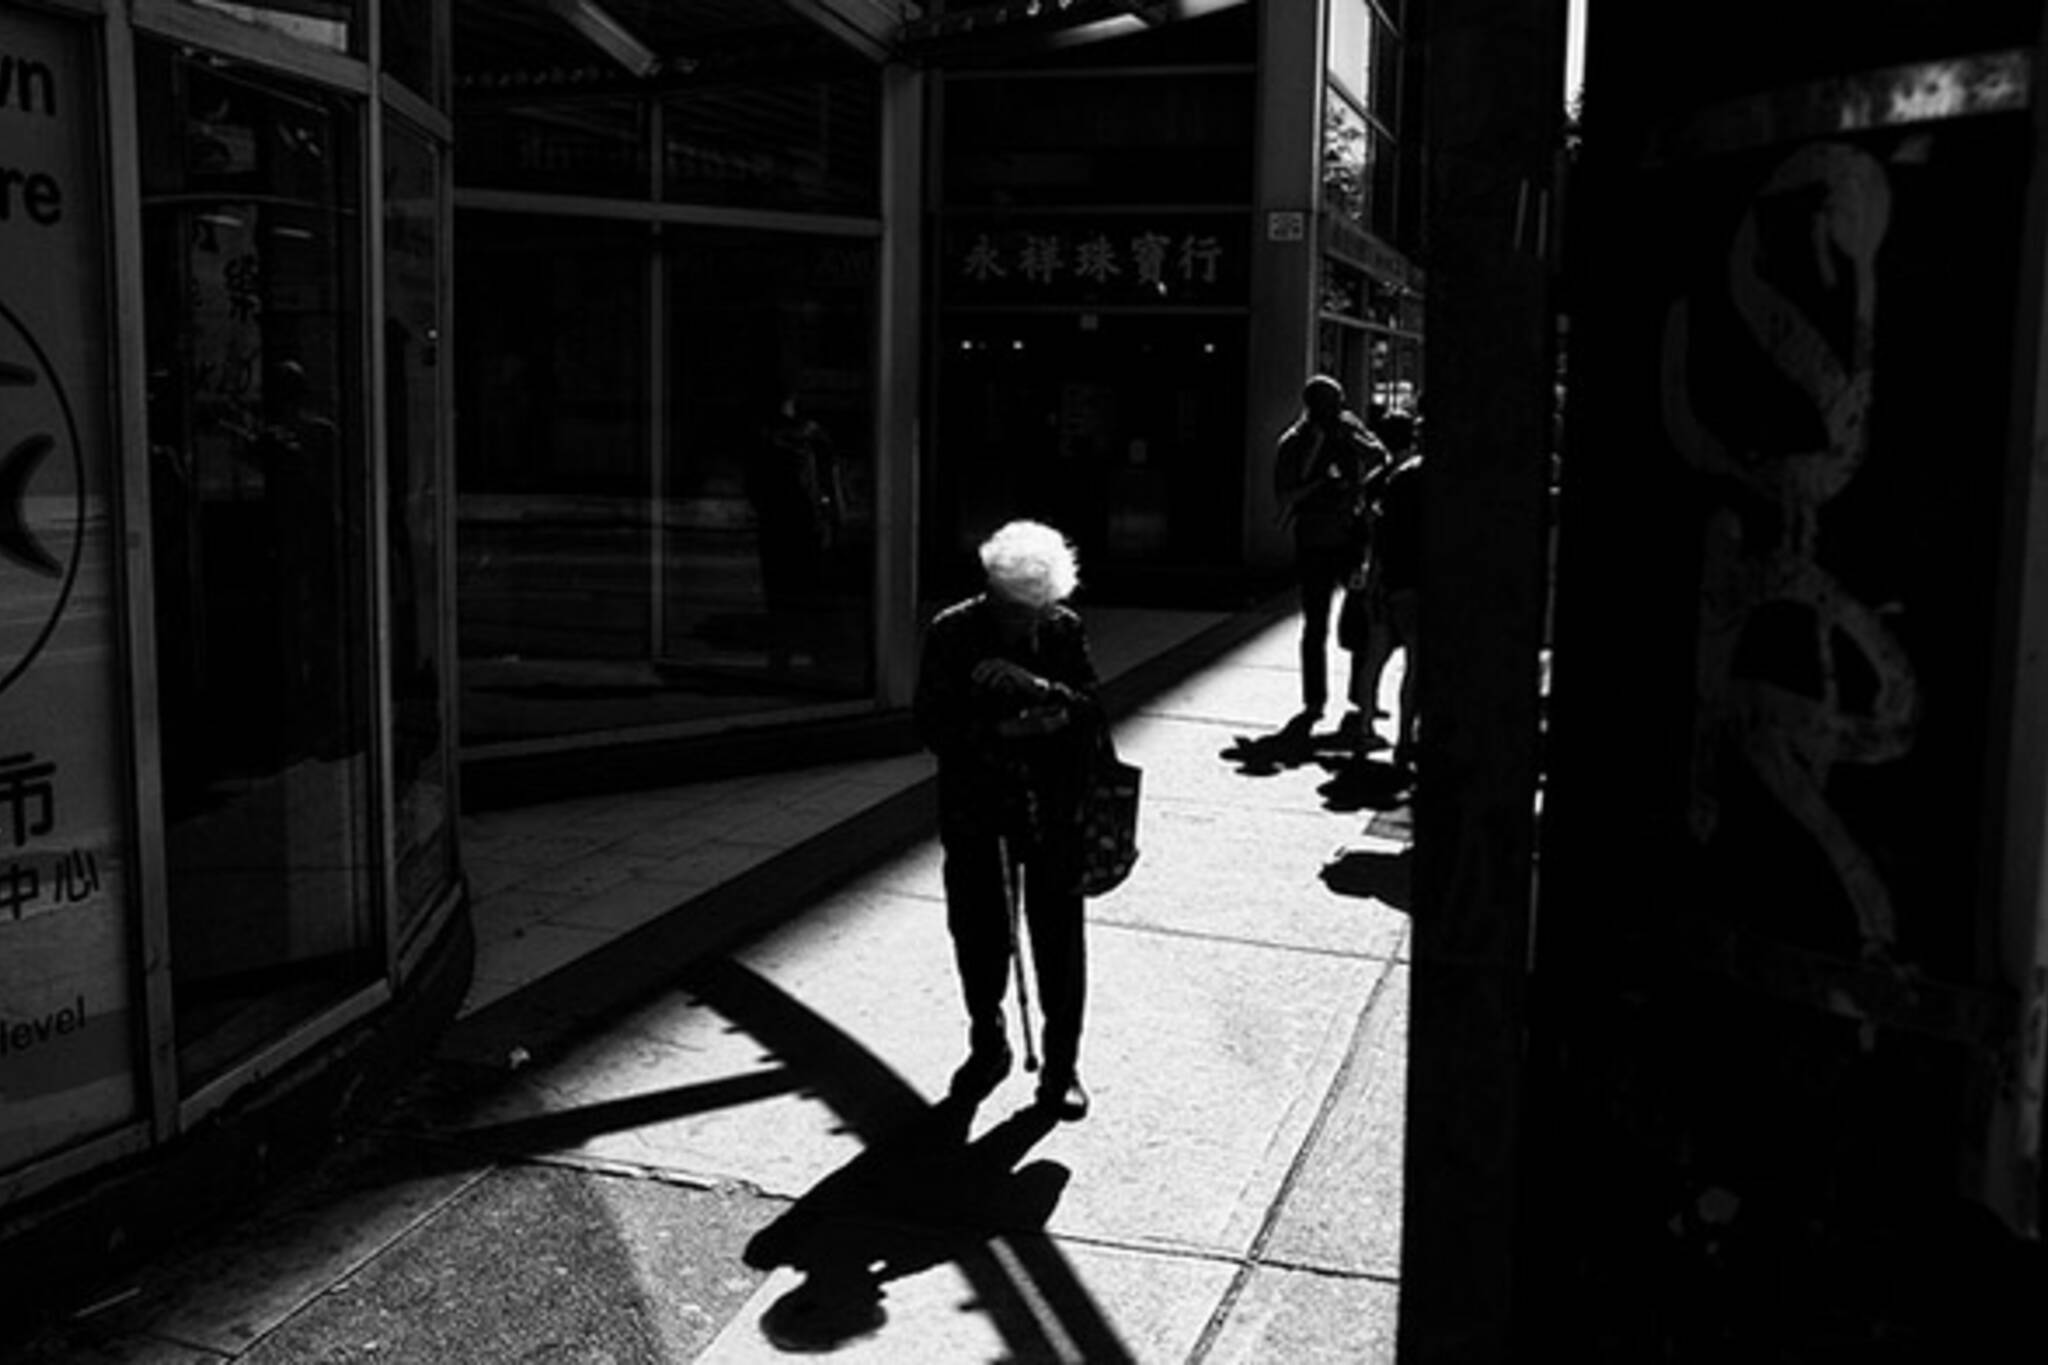 life in shadows